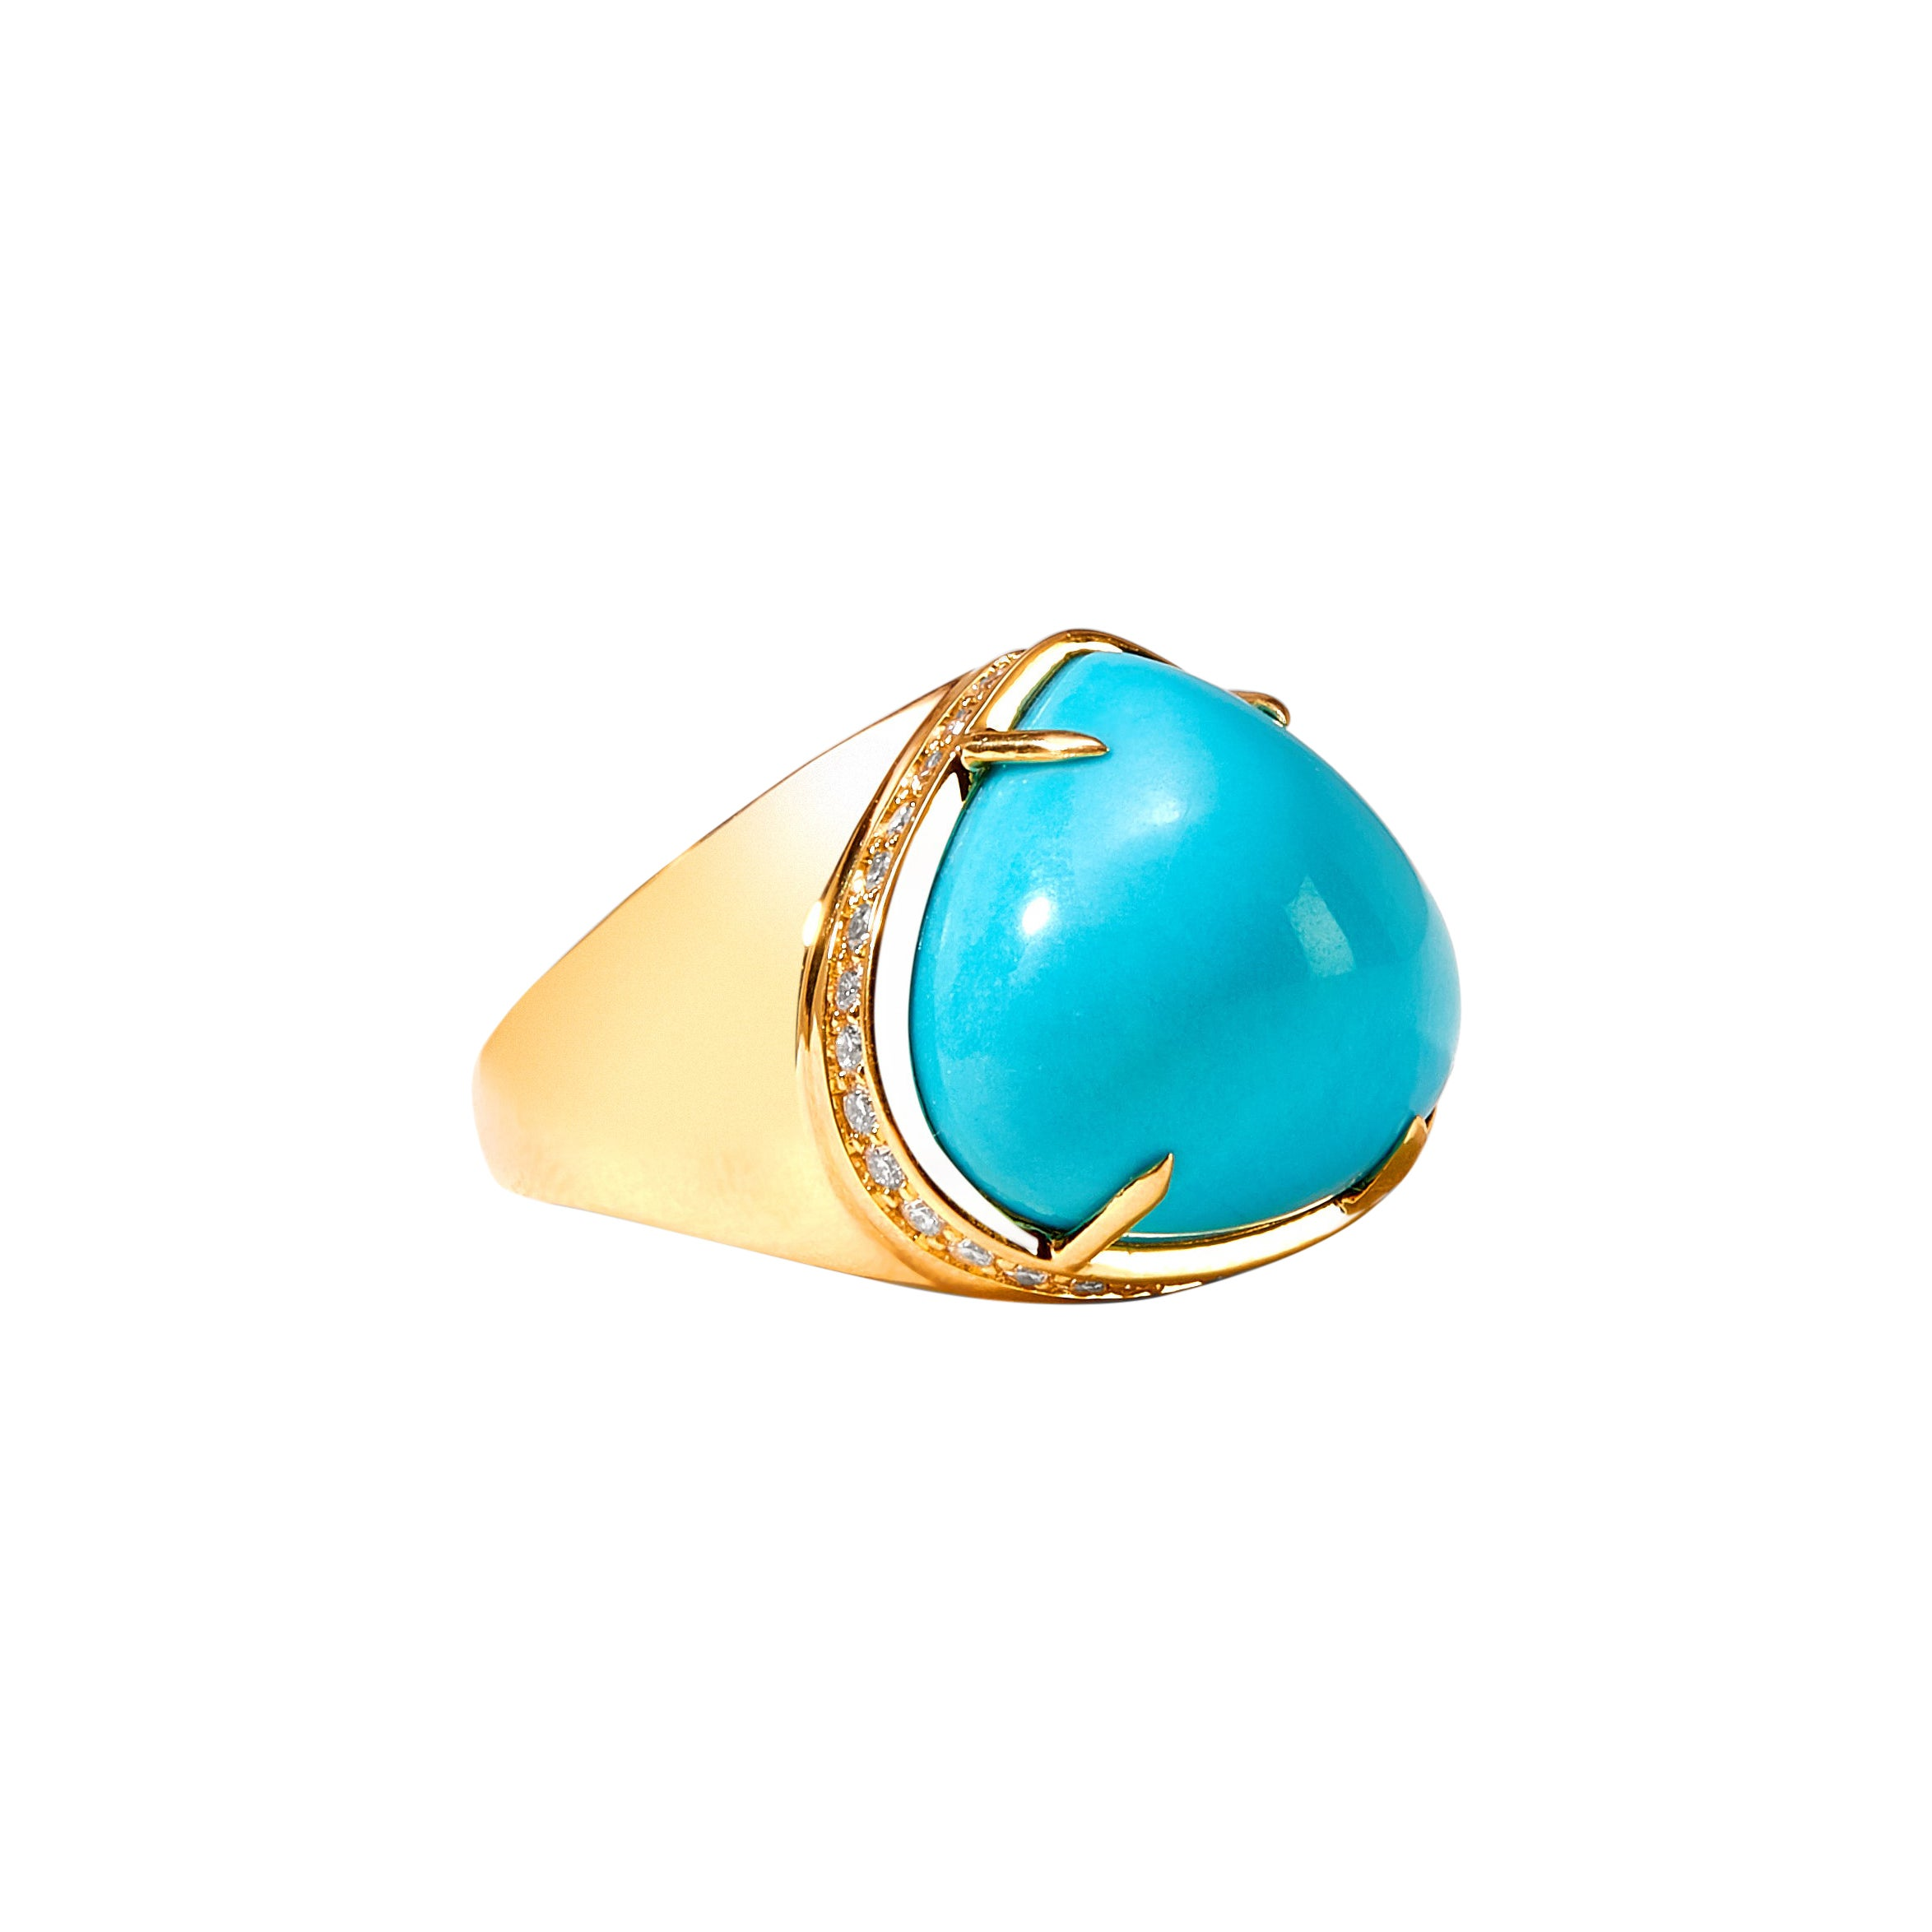 Syna Sleeping Beauty Turquoise Yellow Gold Ring with Champagne Diamonds